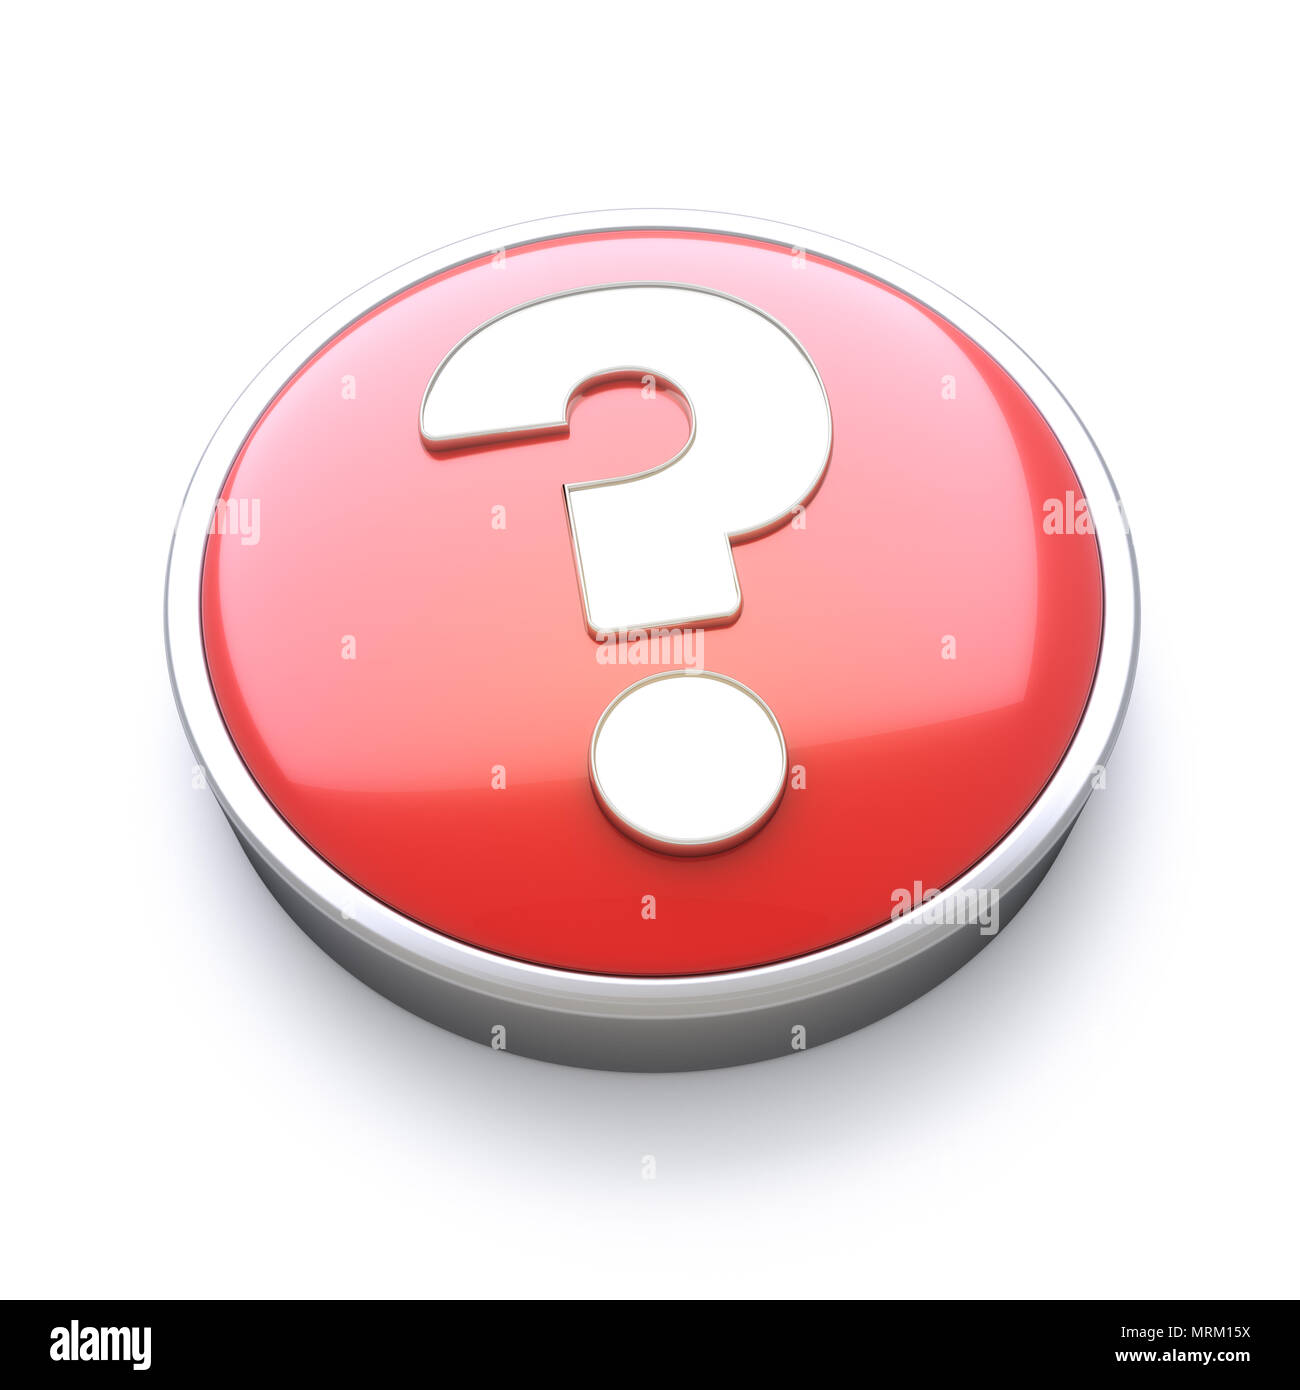 Help or question icon - Stock Image